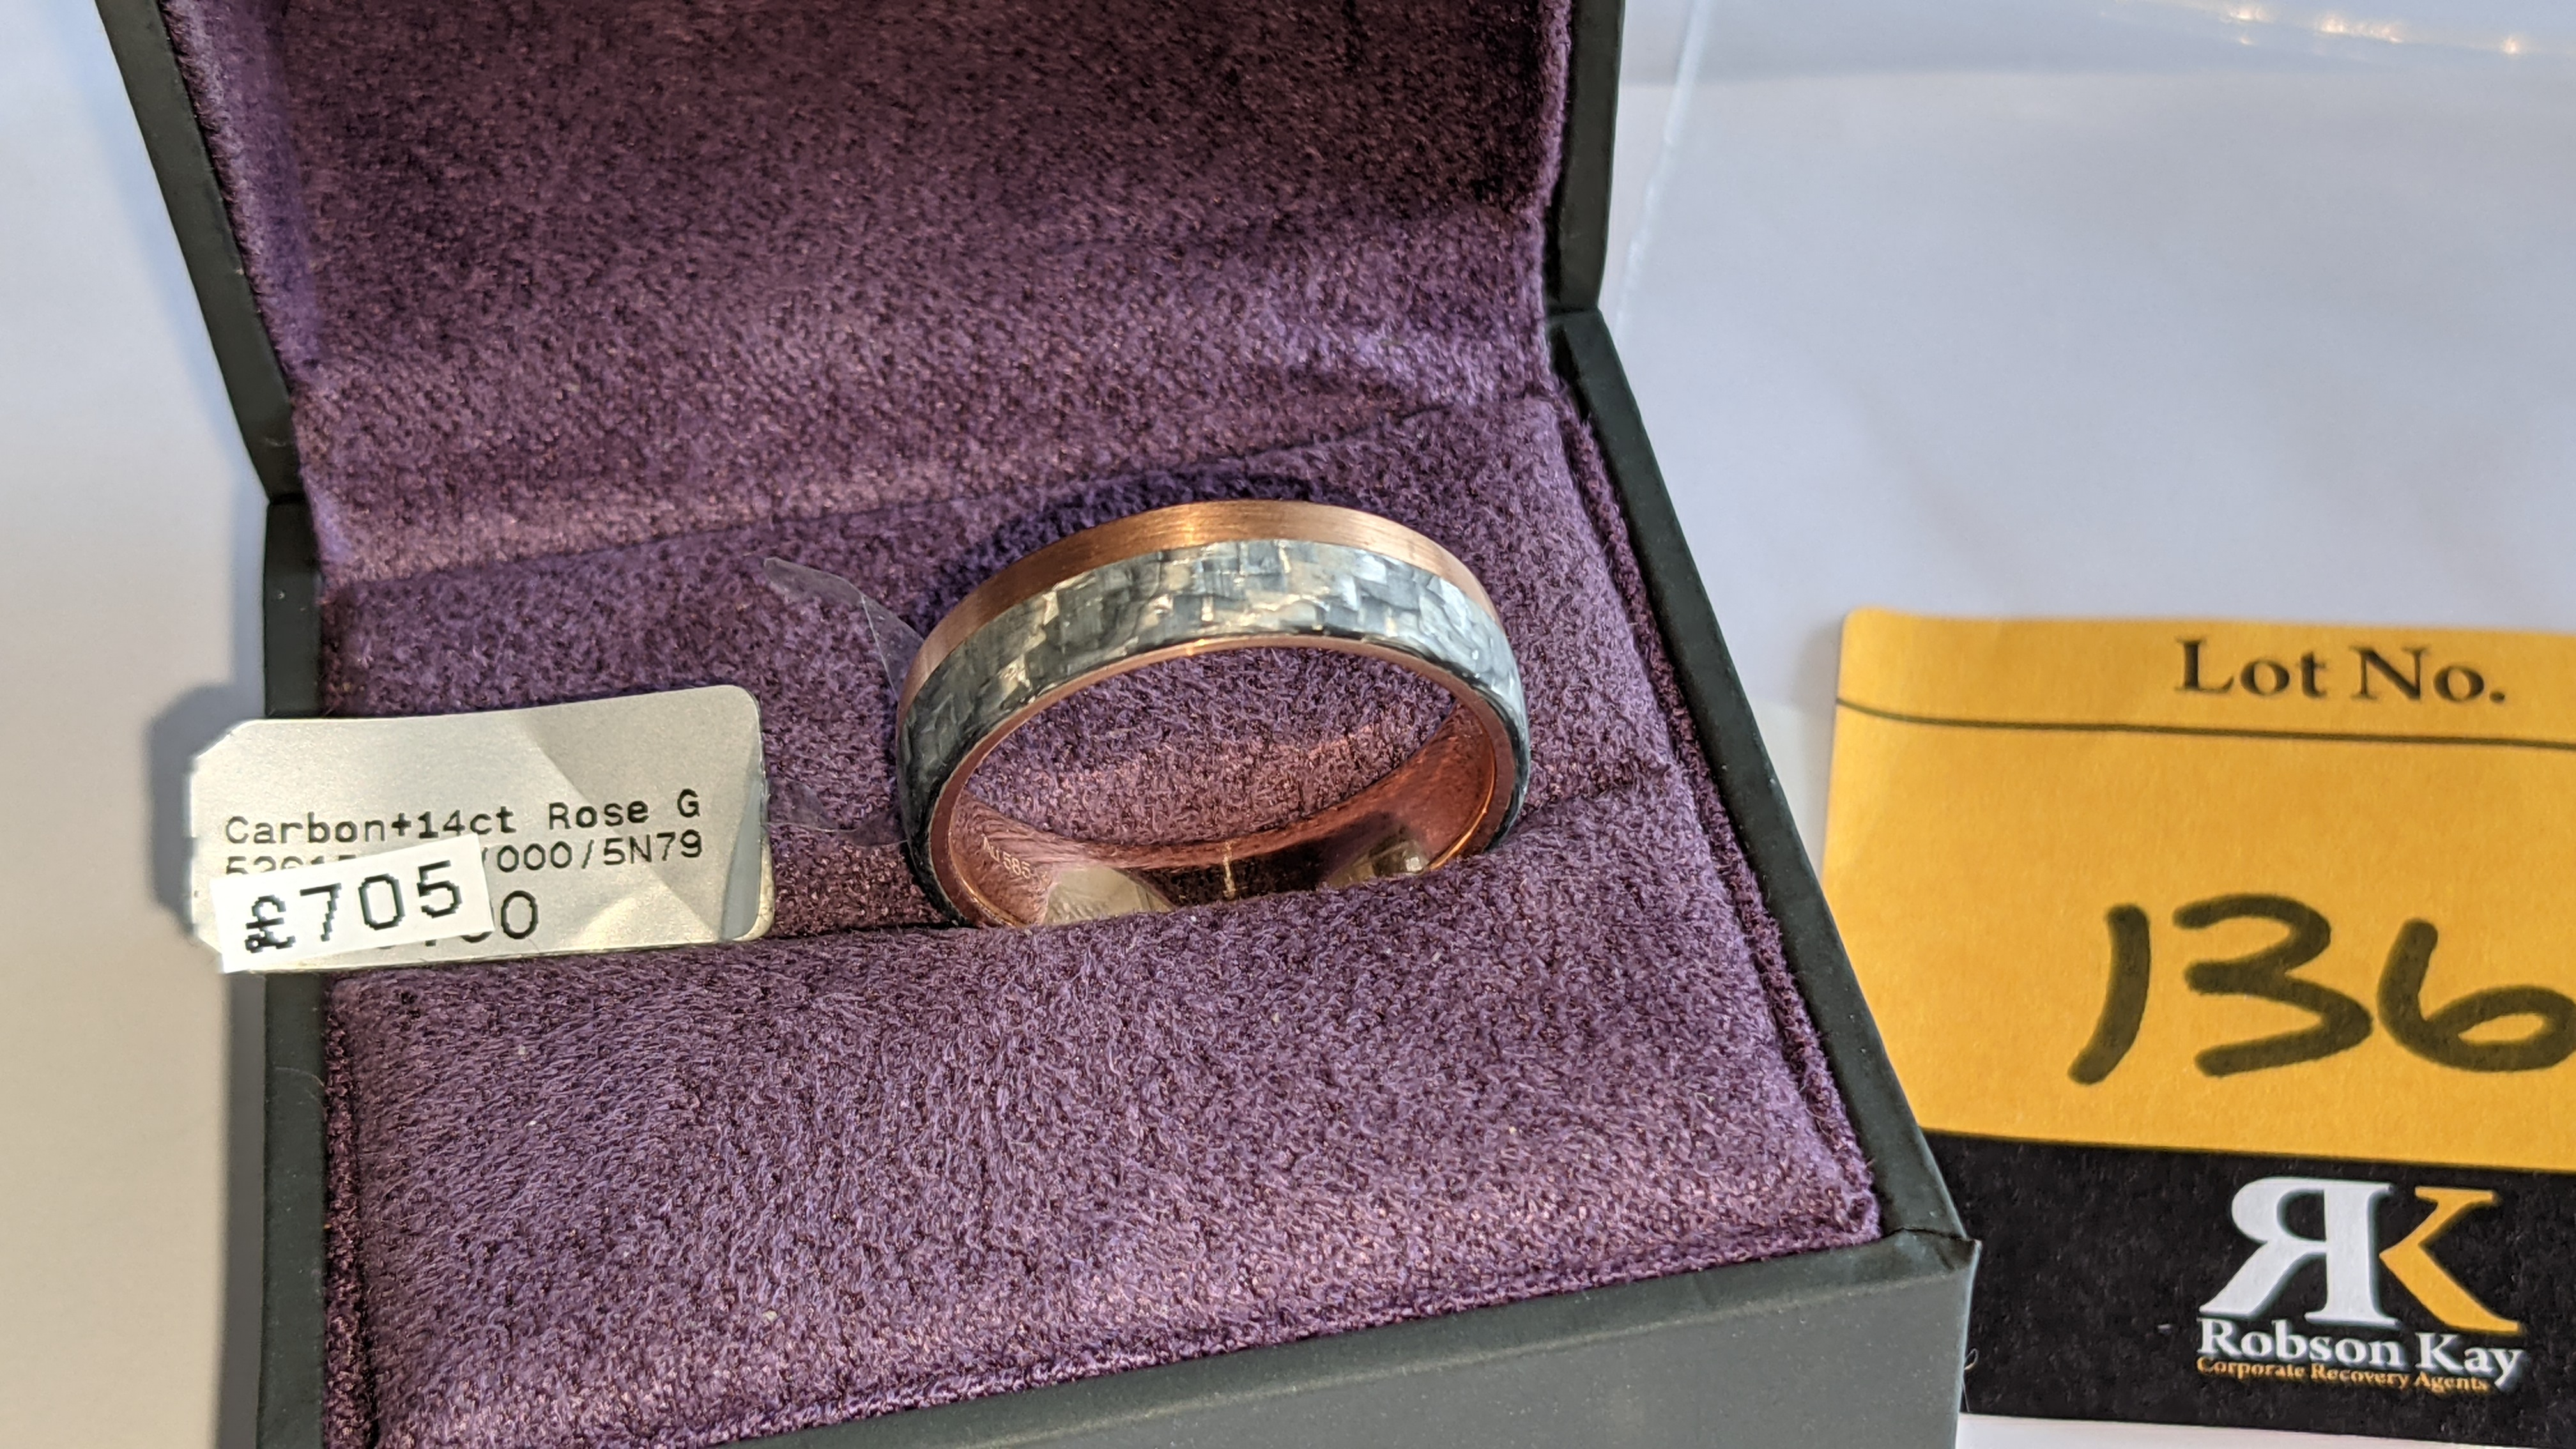 Carbon & 14ct rose gold ring RRP £705